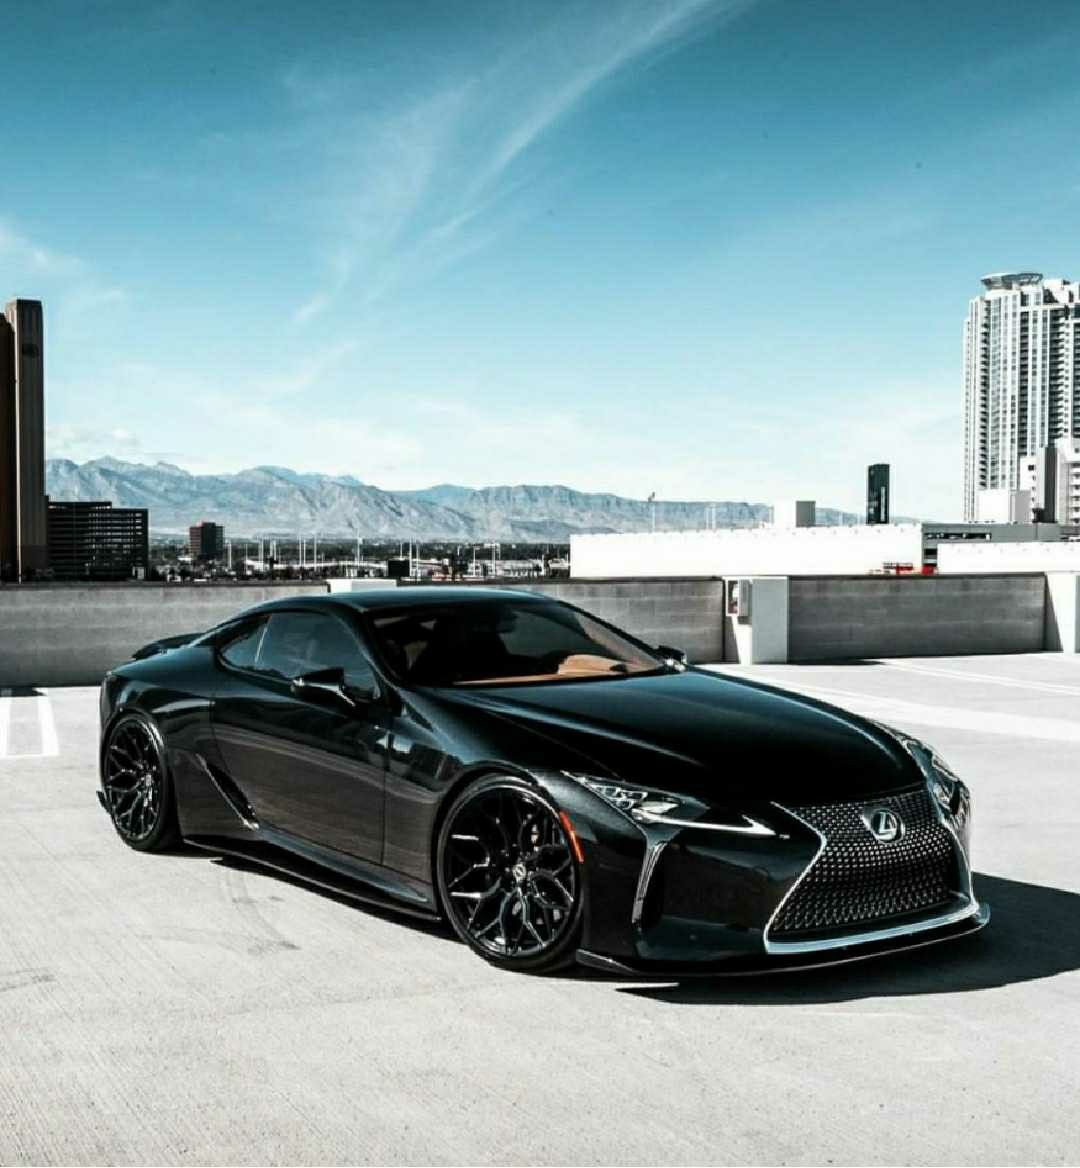 Pin By Joelmf On Karta Zhelanij 2019 Dream Cars Lexus Super Cars Lexus Sports Car